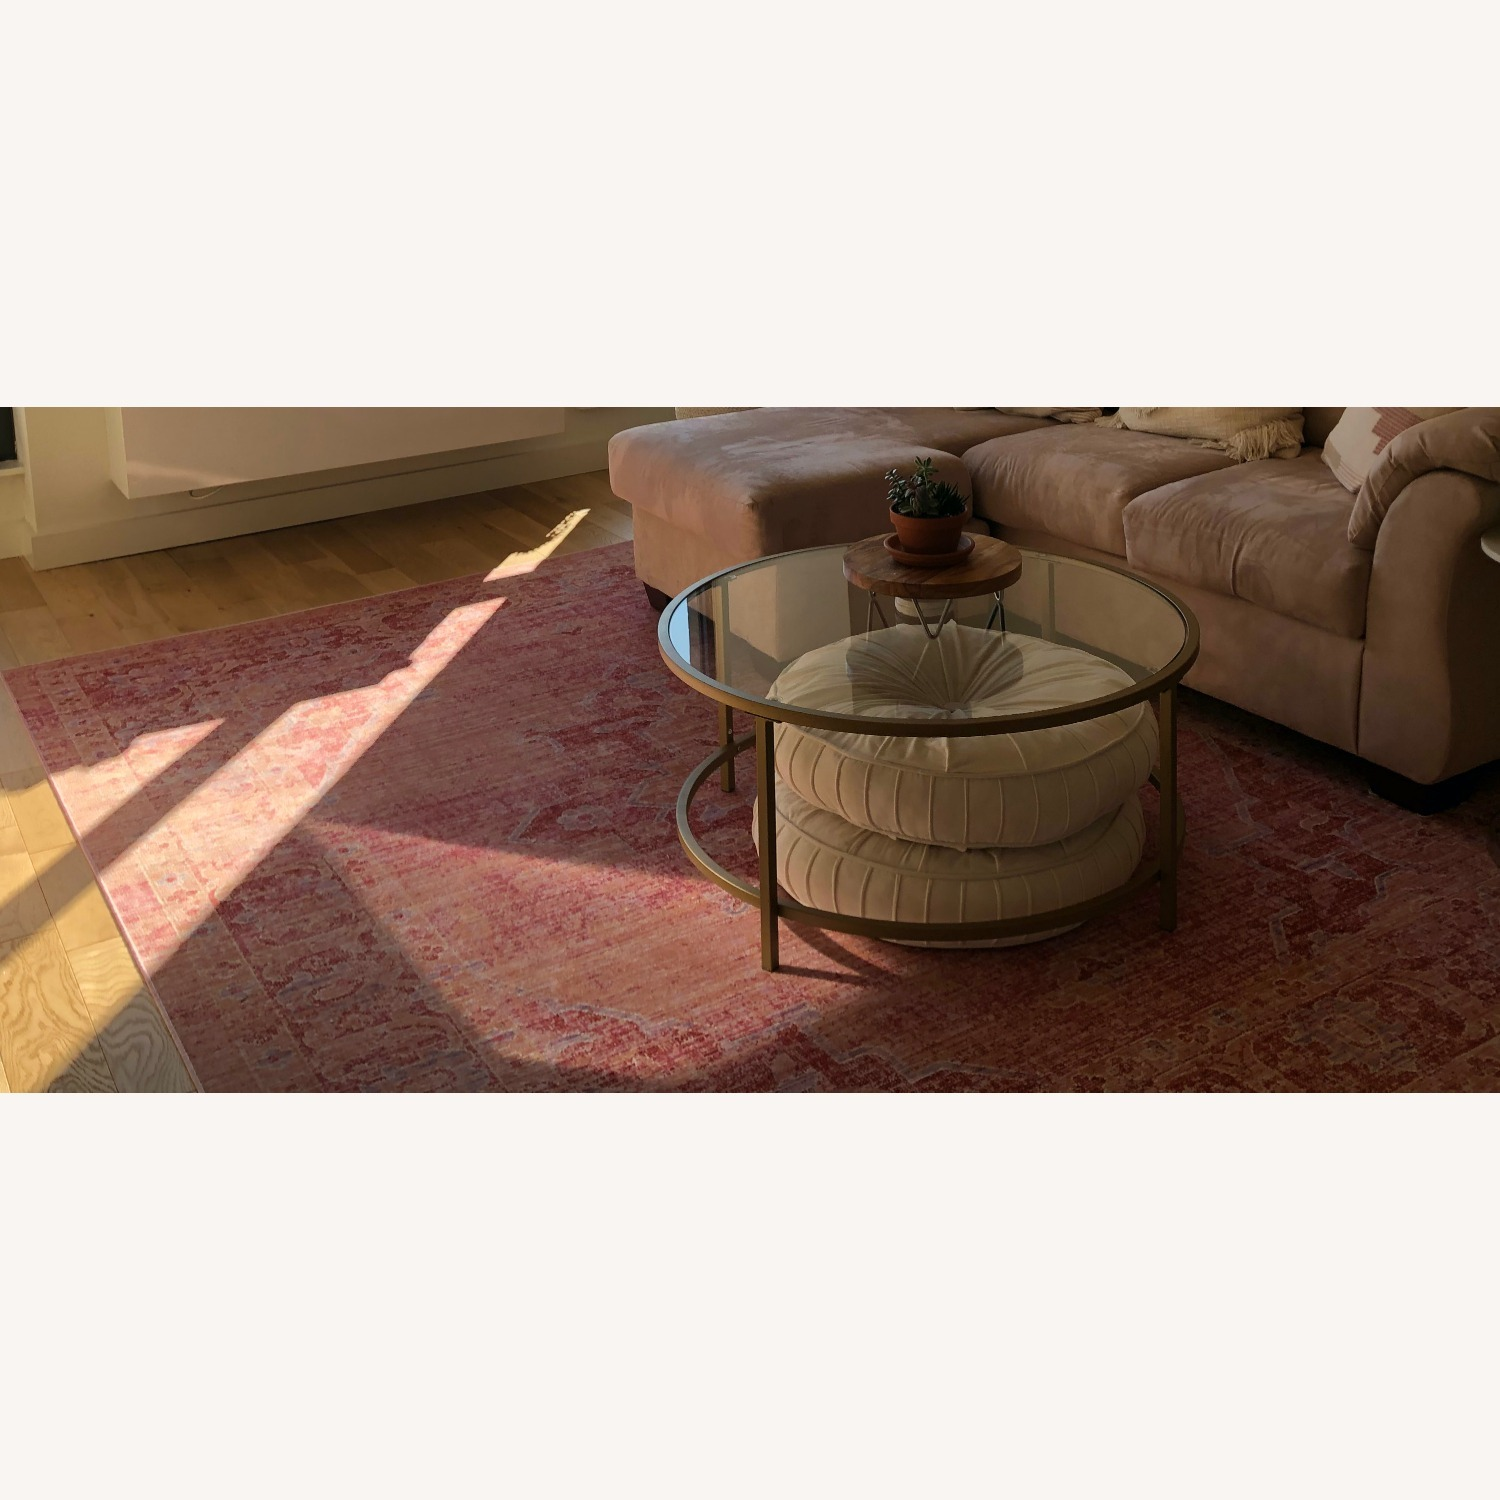 Safavieh 8x10 Pink and Multi-Color Area Rug - image-1